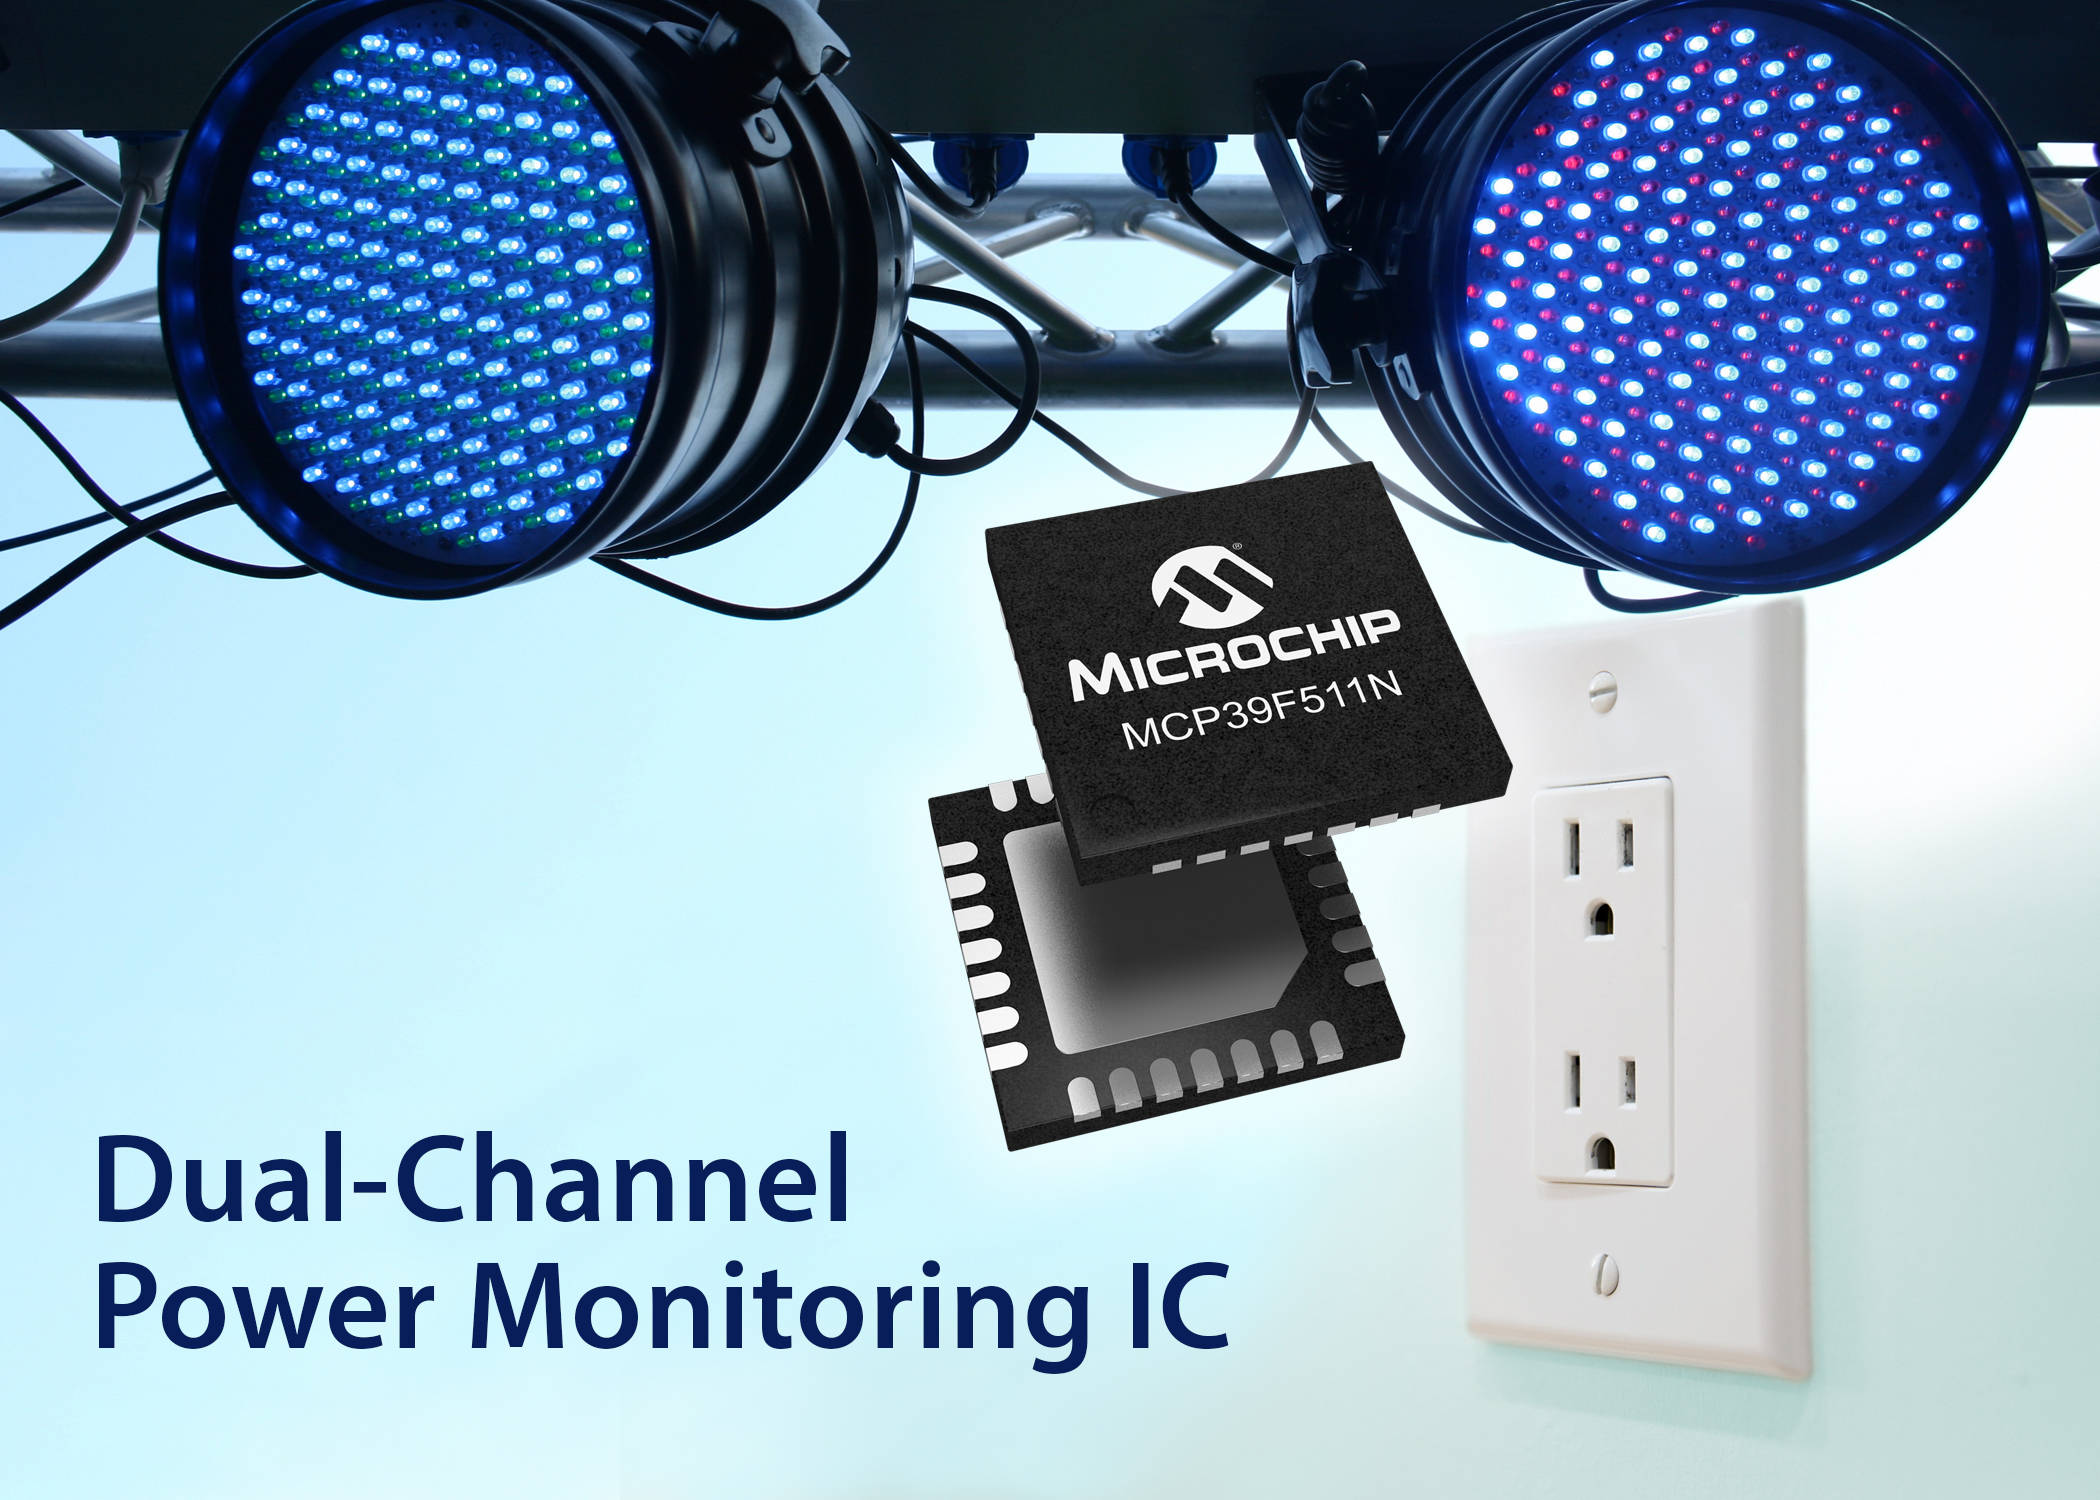 New Power Monitoring Ic From Microchip Provides Highly Accurate Real Factor Measurement Circuit Using Pic Microcontroller 160120 Msld Pr Mcp39f511n 7x5